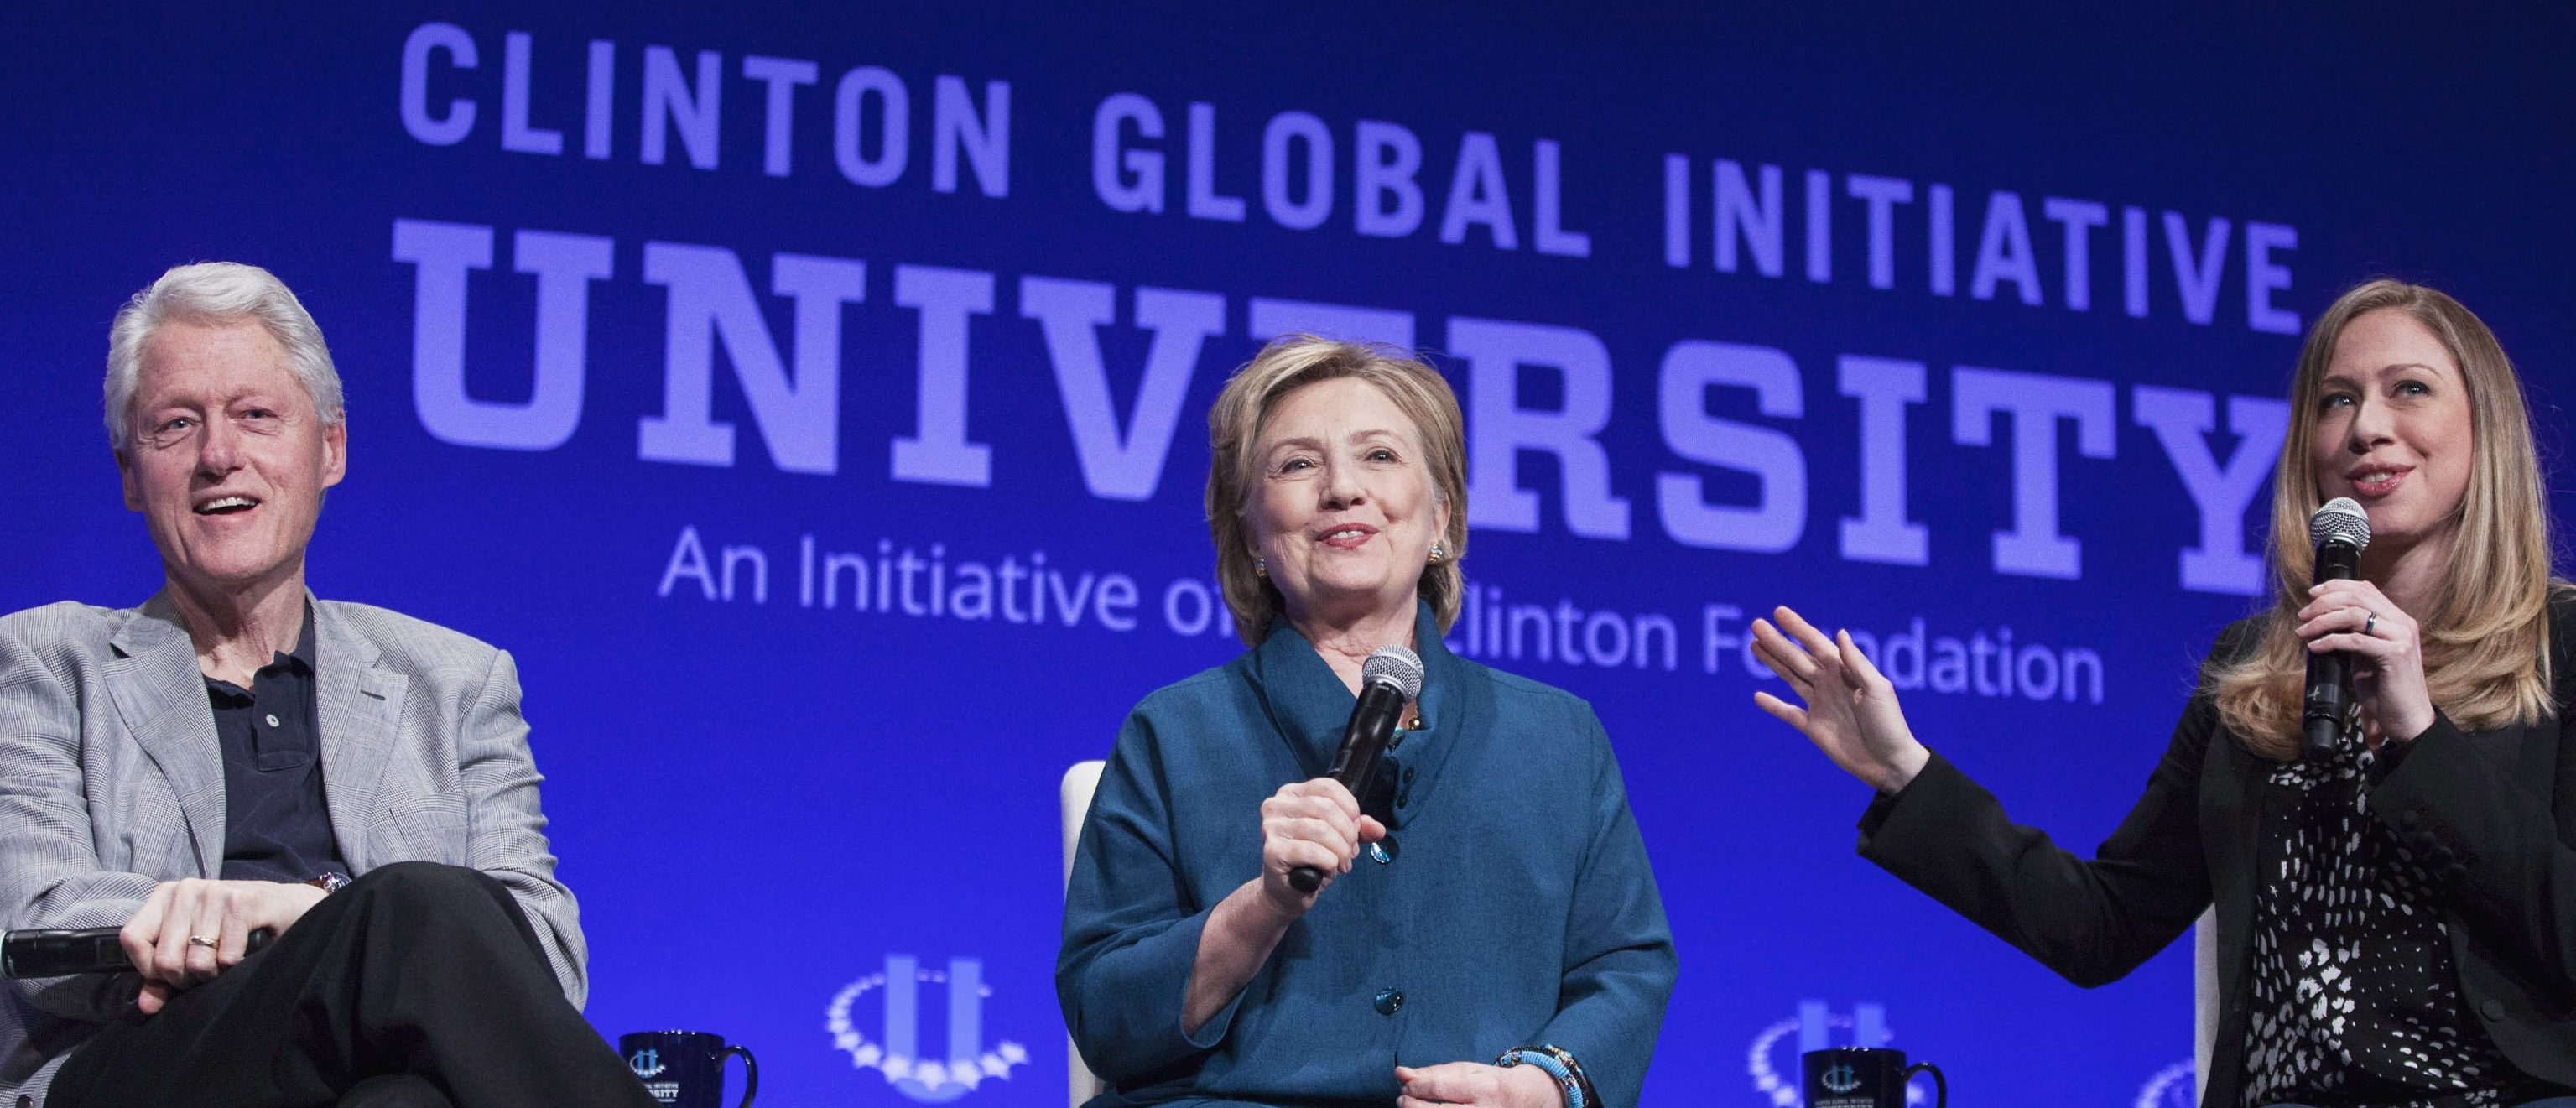 From L-R: Former U.S. President Bill Clinton, Former Secretary of State Hillary Clinton, and Vice Chair of the Clinton Foundation Chelsea Clinton, discuss the Clinton Global Initiative University during the closing plenary session on the second day of the 2014 Meeting of Clinton Global Initiative University at Arizona State University in Tempe, Arizona March 22, 2014. REUTERS/Samantha Sais (UNITED STATES - Tags: POLITICS EDUCATION) - RTR3I6XL